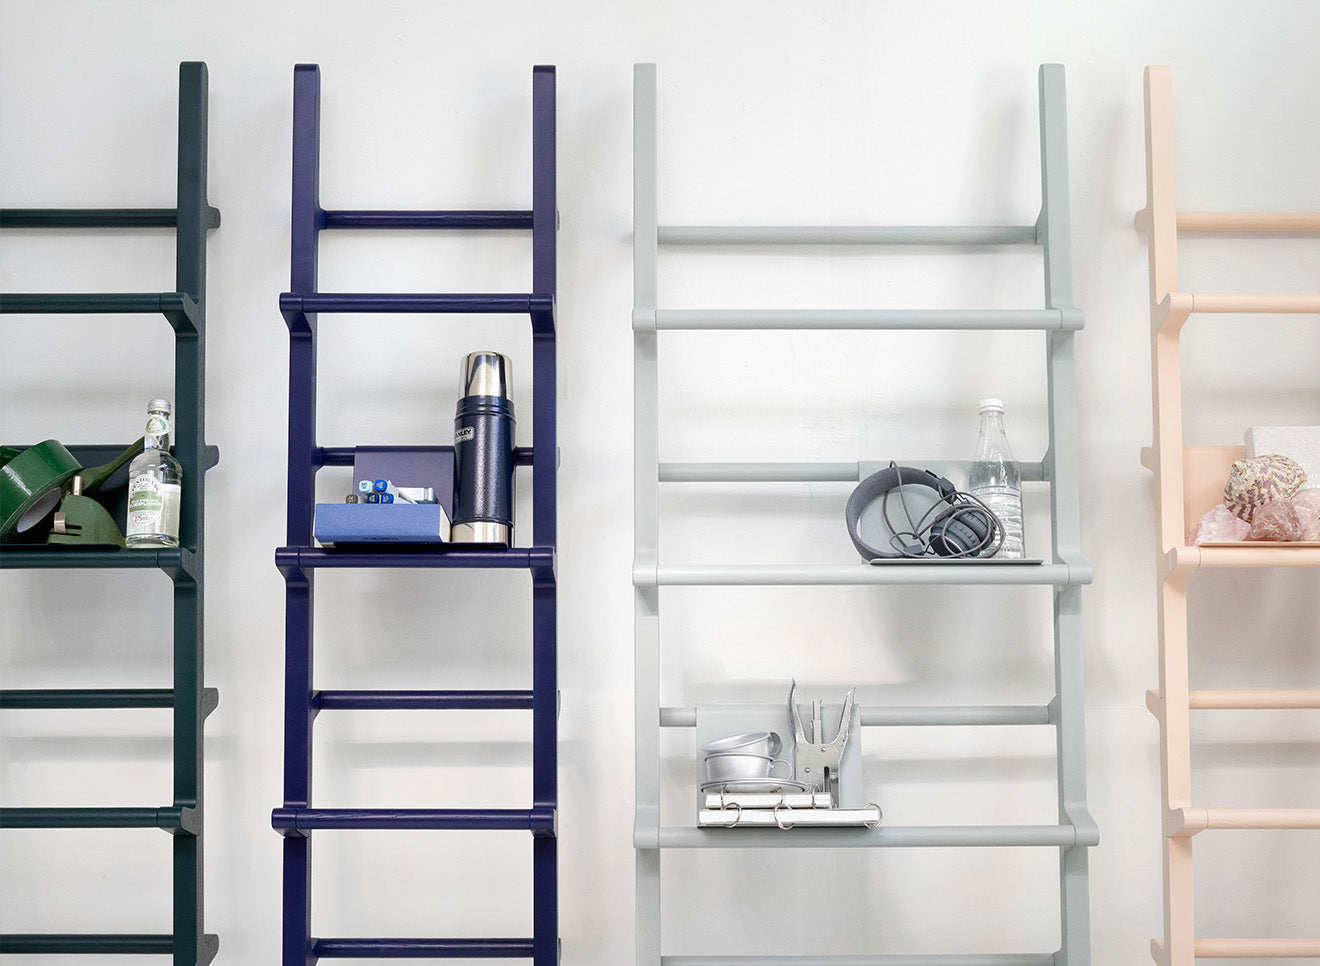 Hem ladder style display shelves in Scandinavian style space